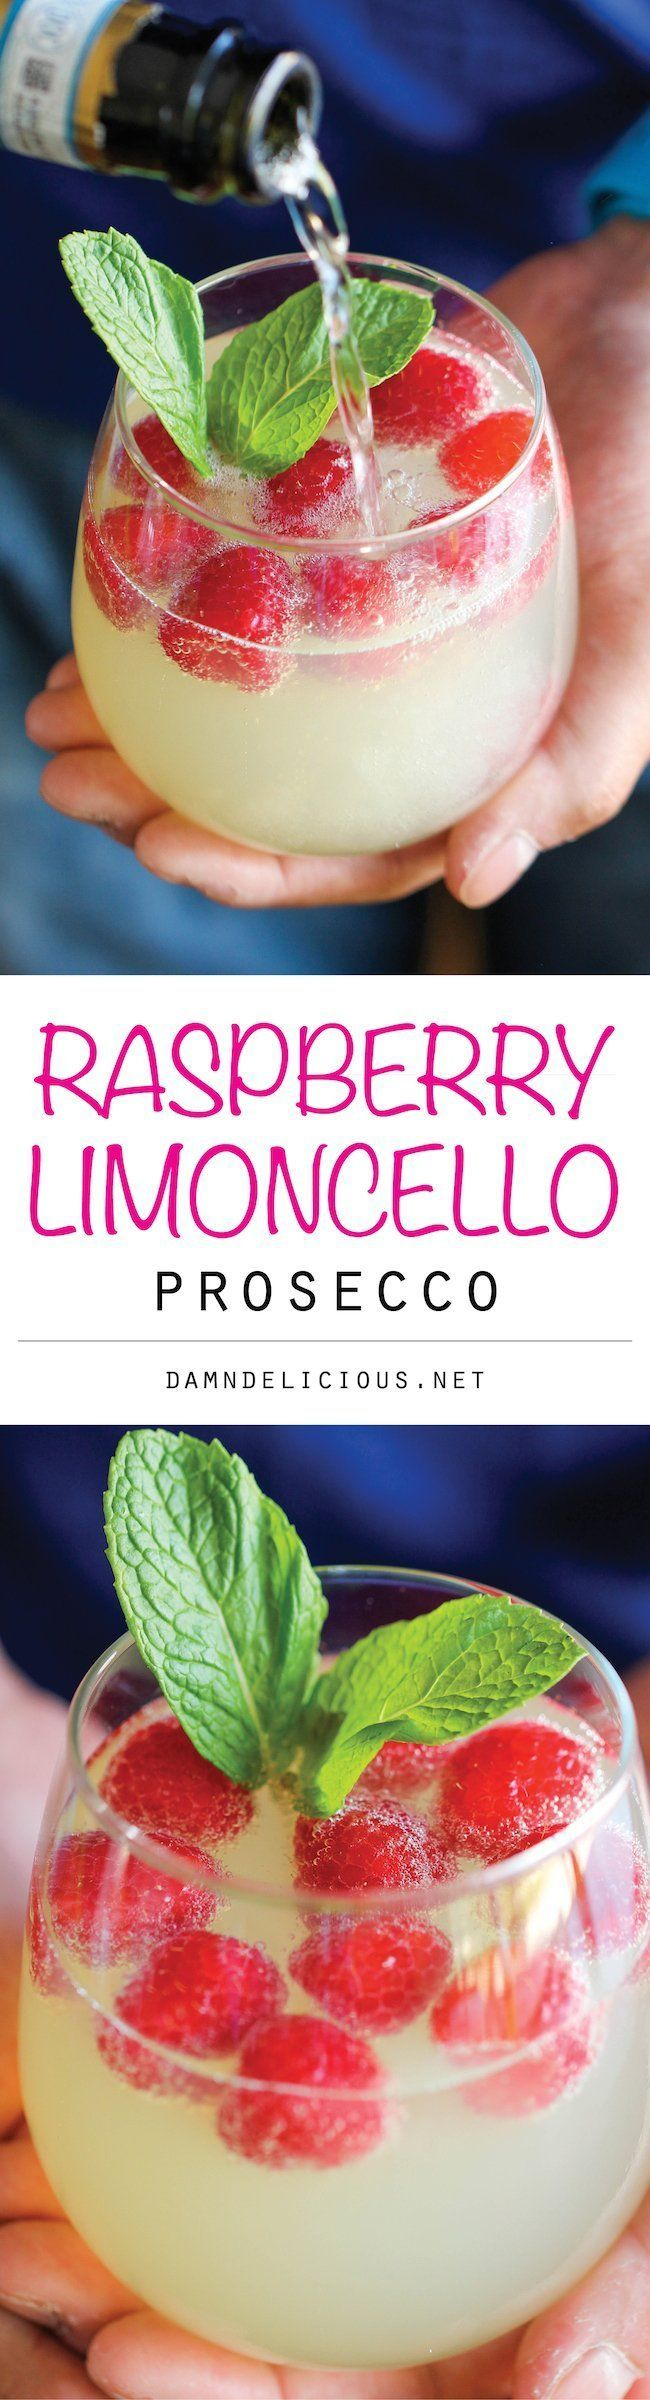 3 cups prosecco, chilled 1 cup limoncello liqueur, chilled 1 cup frozen raspberries 6 sprigs fresh mint